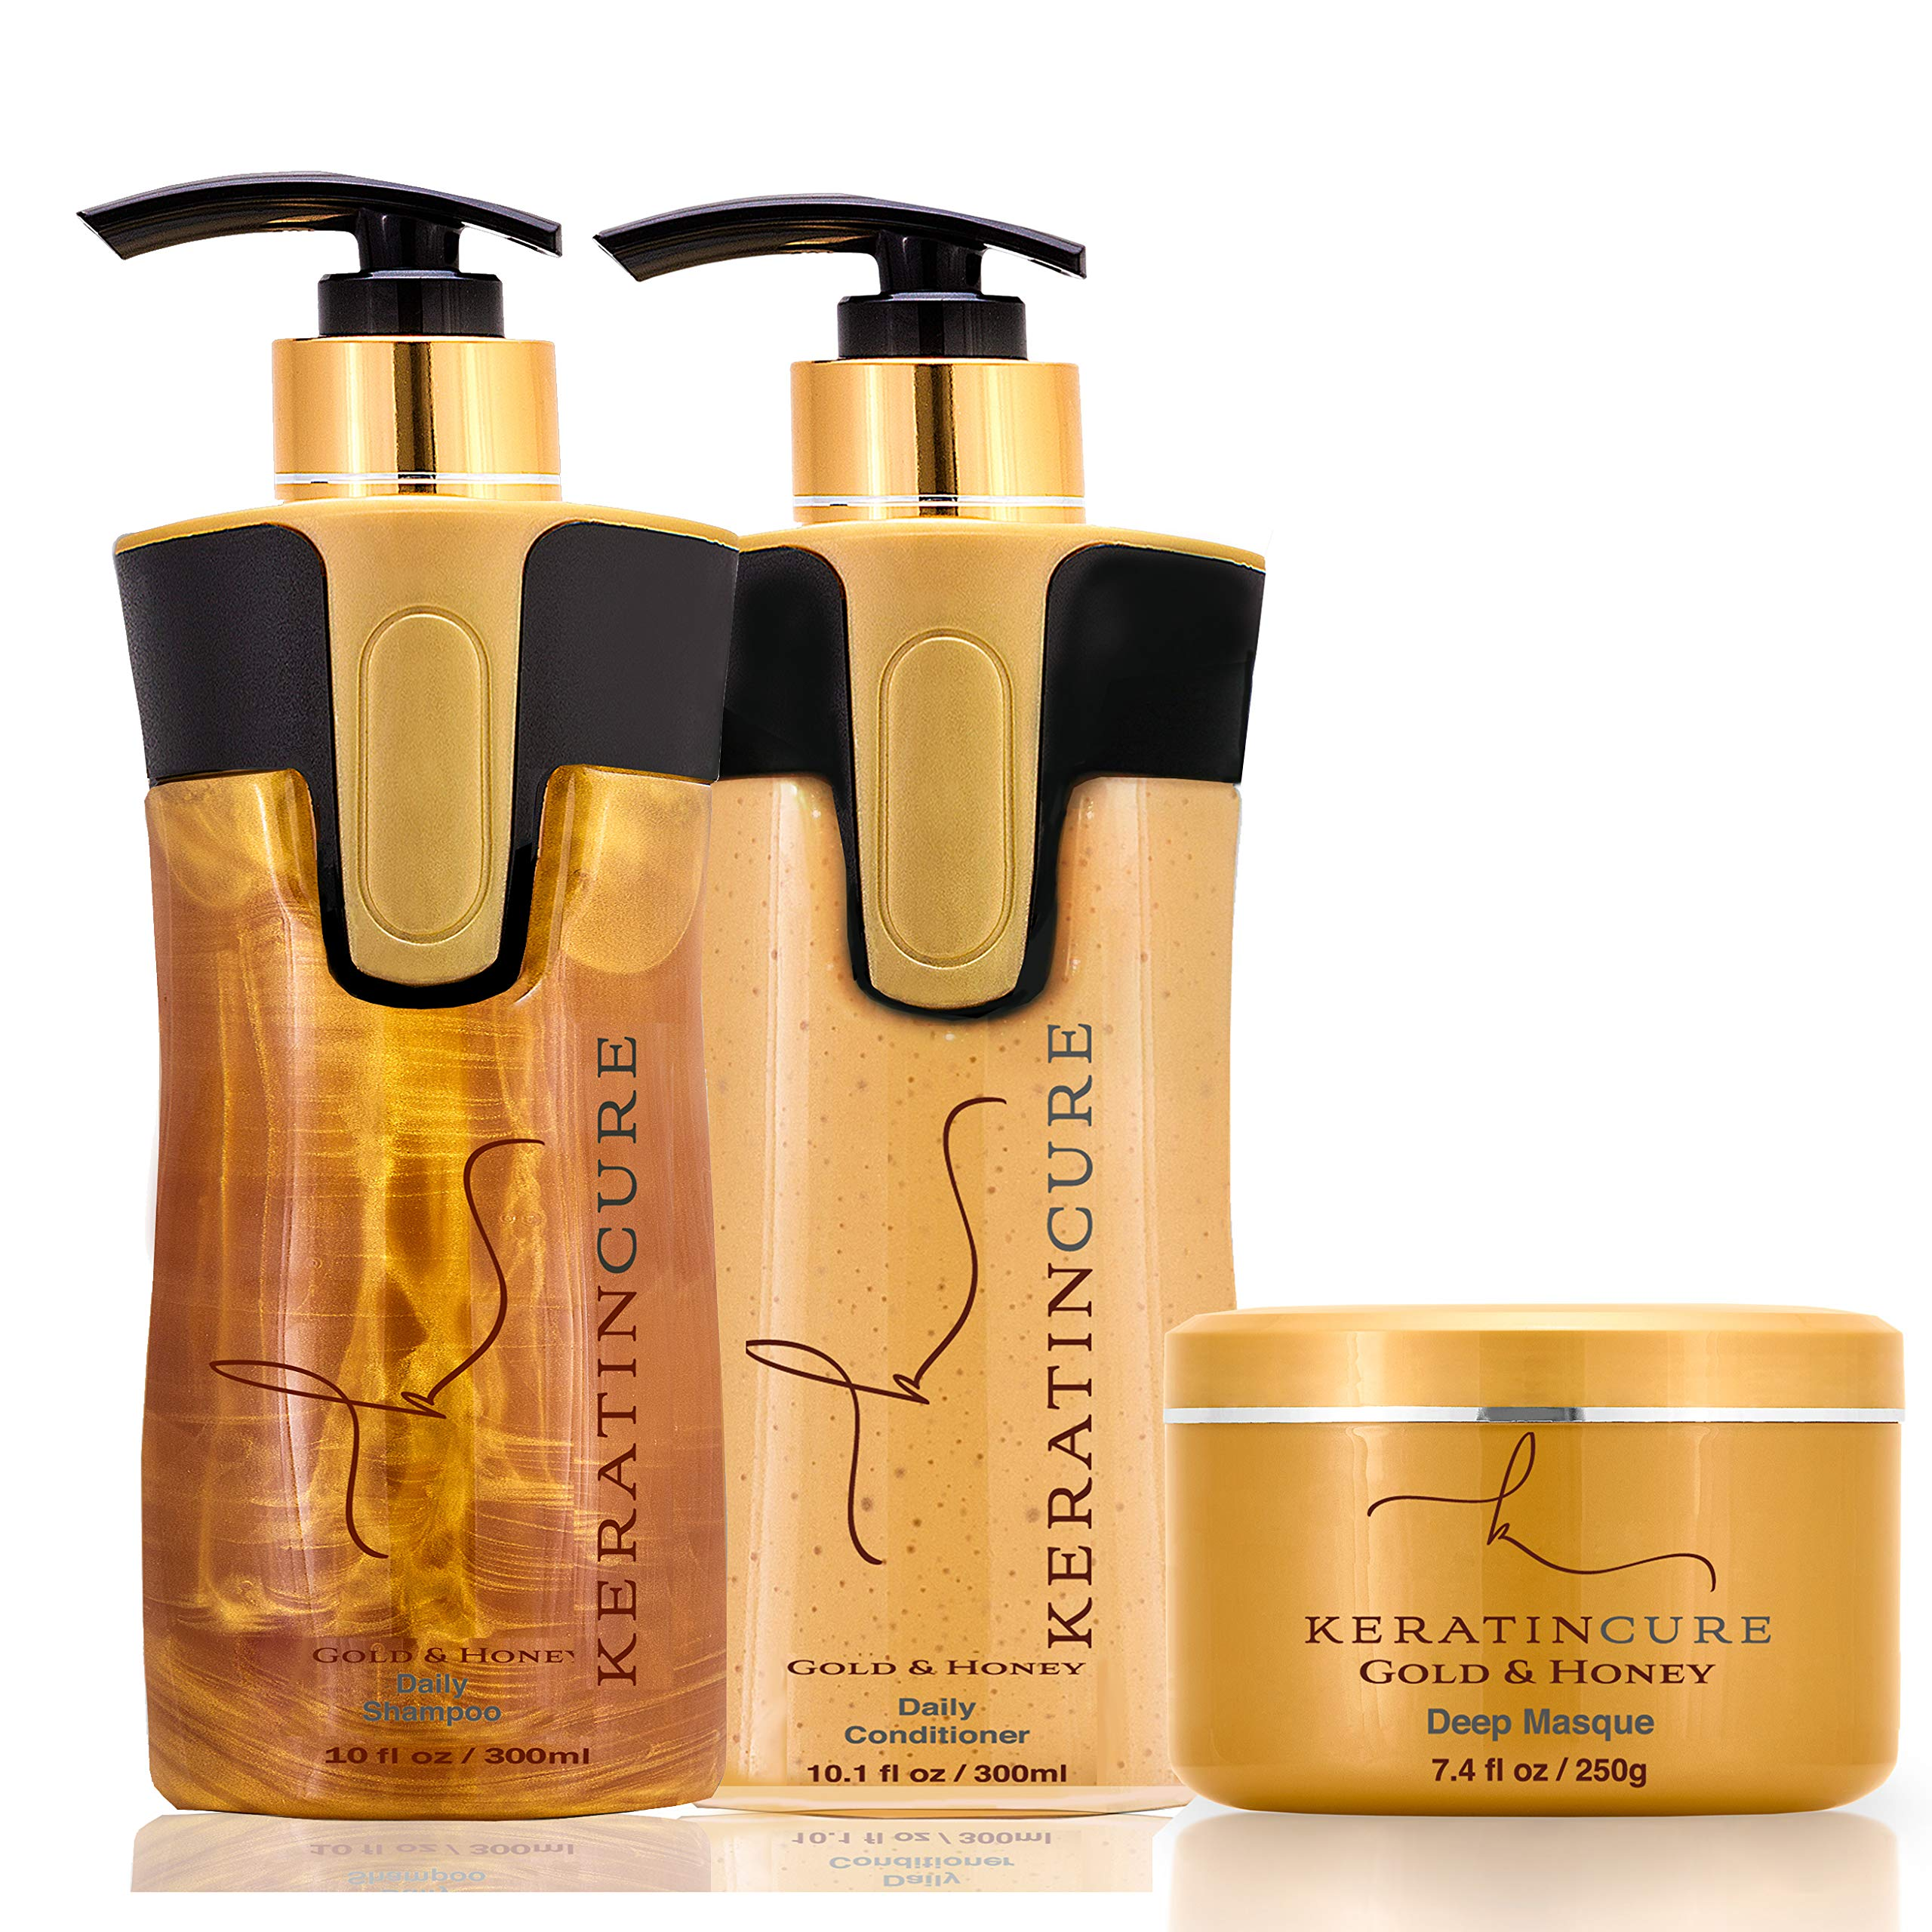 Keratin Cure Brazilian Gold & Honey Sulfate Free Shampoo Conditioner Masque Best for Damaged Dry, Curly or Frizzy Hair - Thickening for Fine/Thin Hair, Safe for Color-Treated, Keratin Treated 10oz/8oz by Keratin Cure